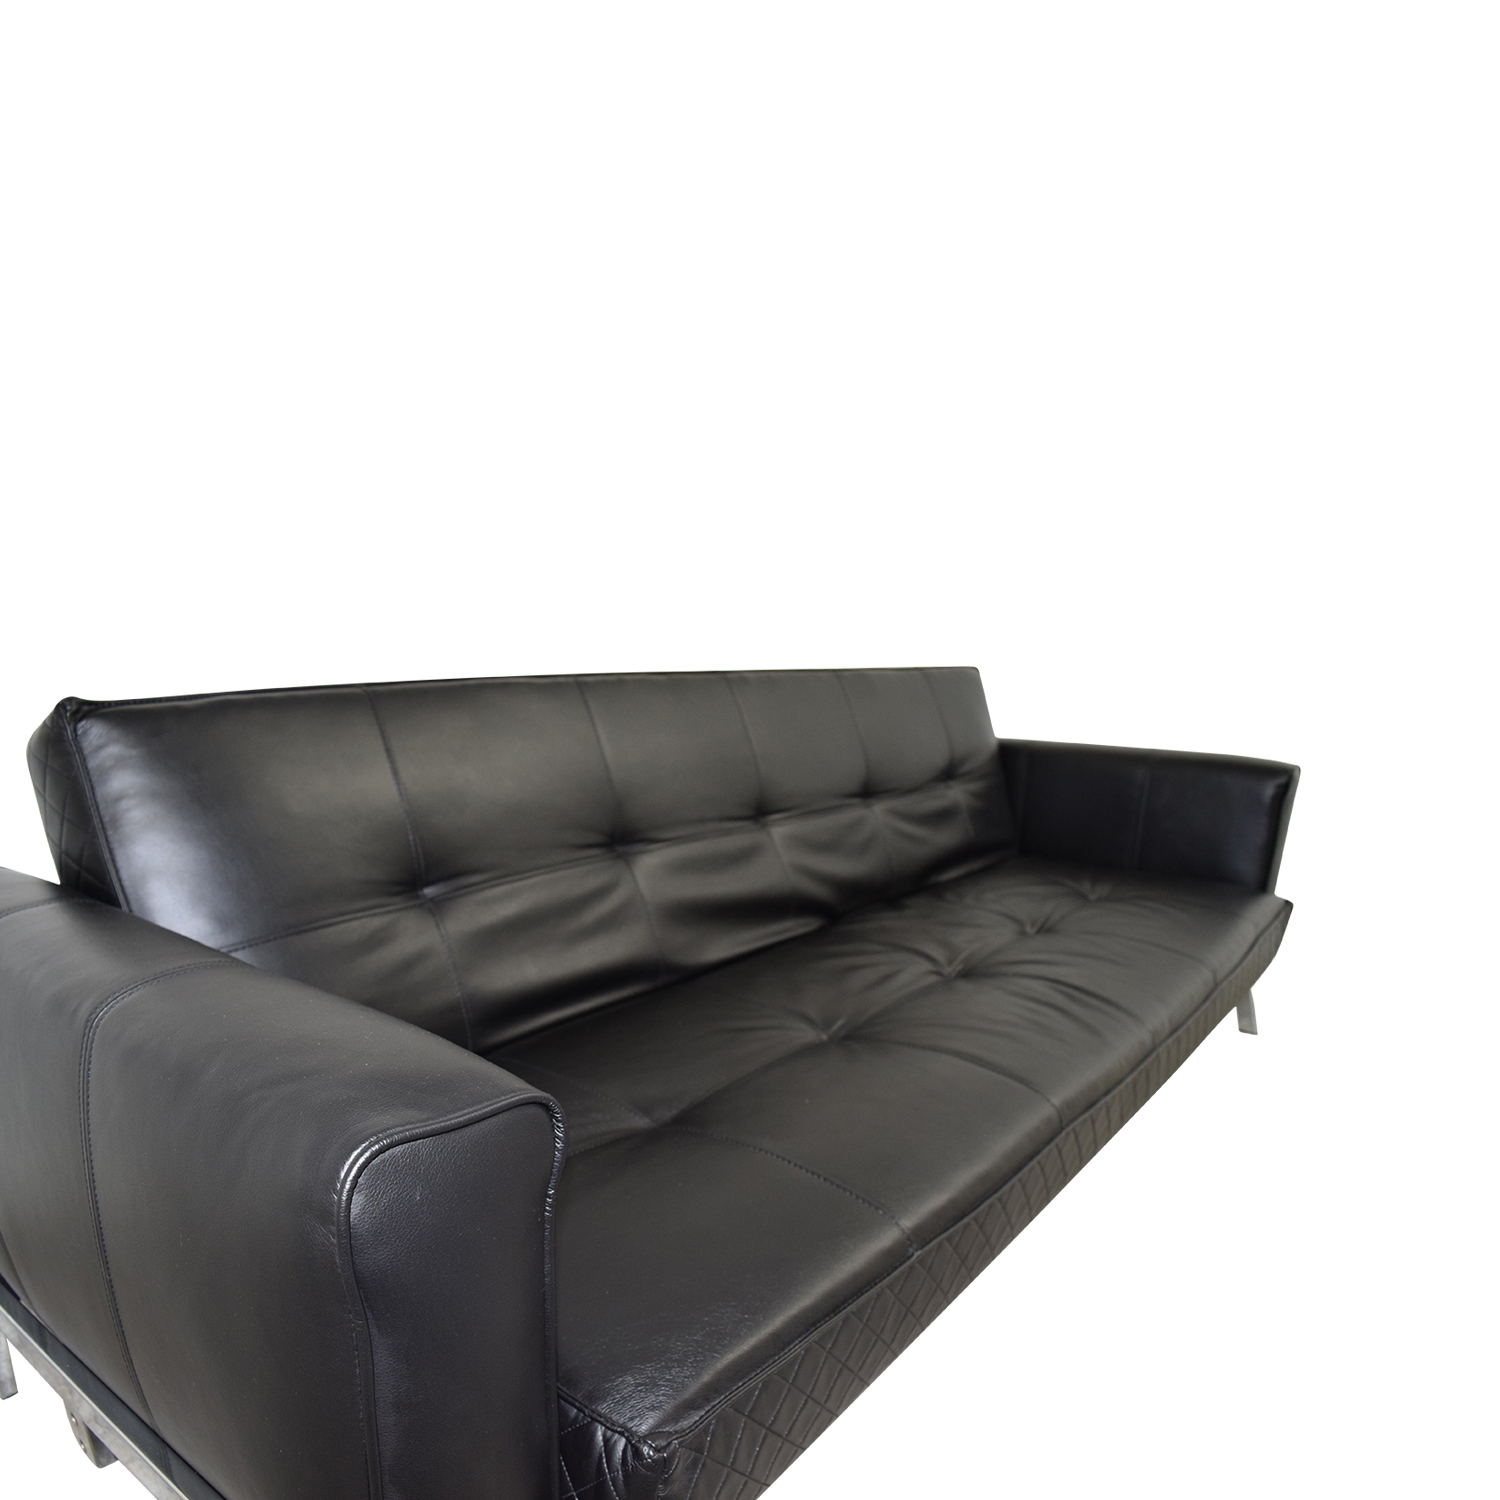 Sofa Leather Workshop: Black Leather Sleeper Sofa / Sofas